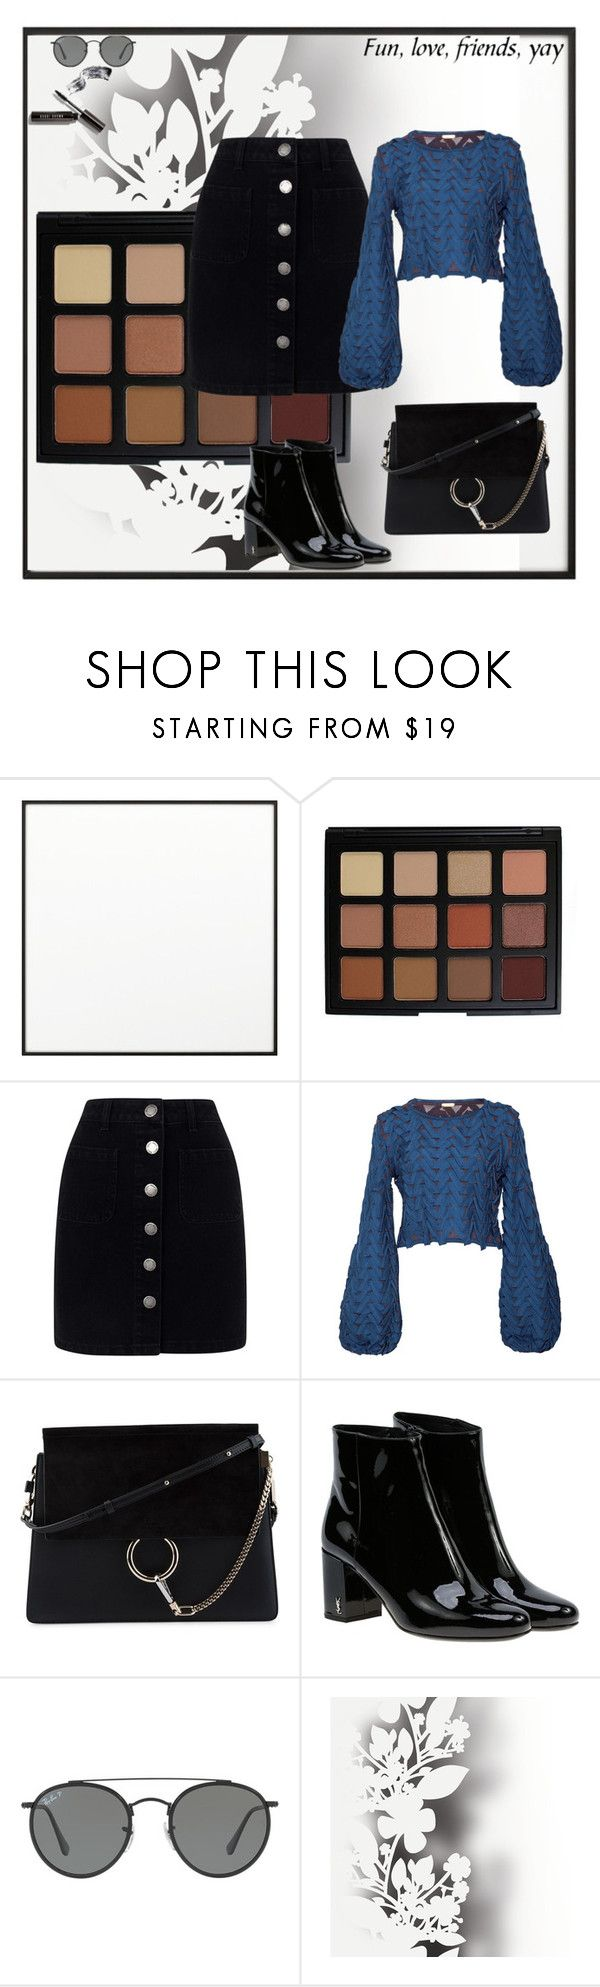 """Sem título #84"" by rebecioatto on Polyvore featuring moda, By Lassen, Morphe, Miss Selfridge, Pepa Pombo, Chloé, Yves Saint Laurent, Ray-Ban, Élitis e Bobbi Brown Cosmetics"